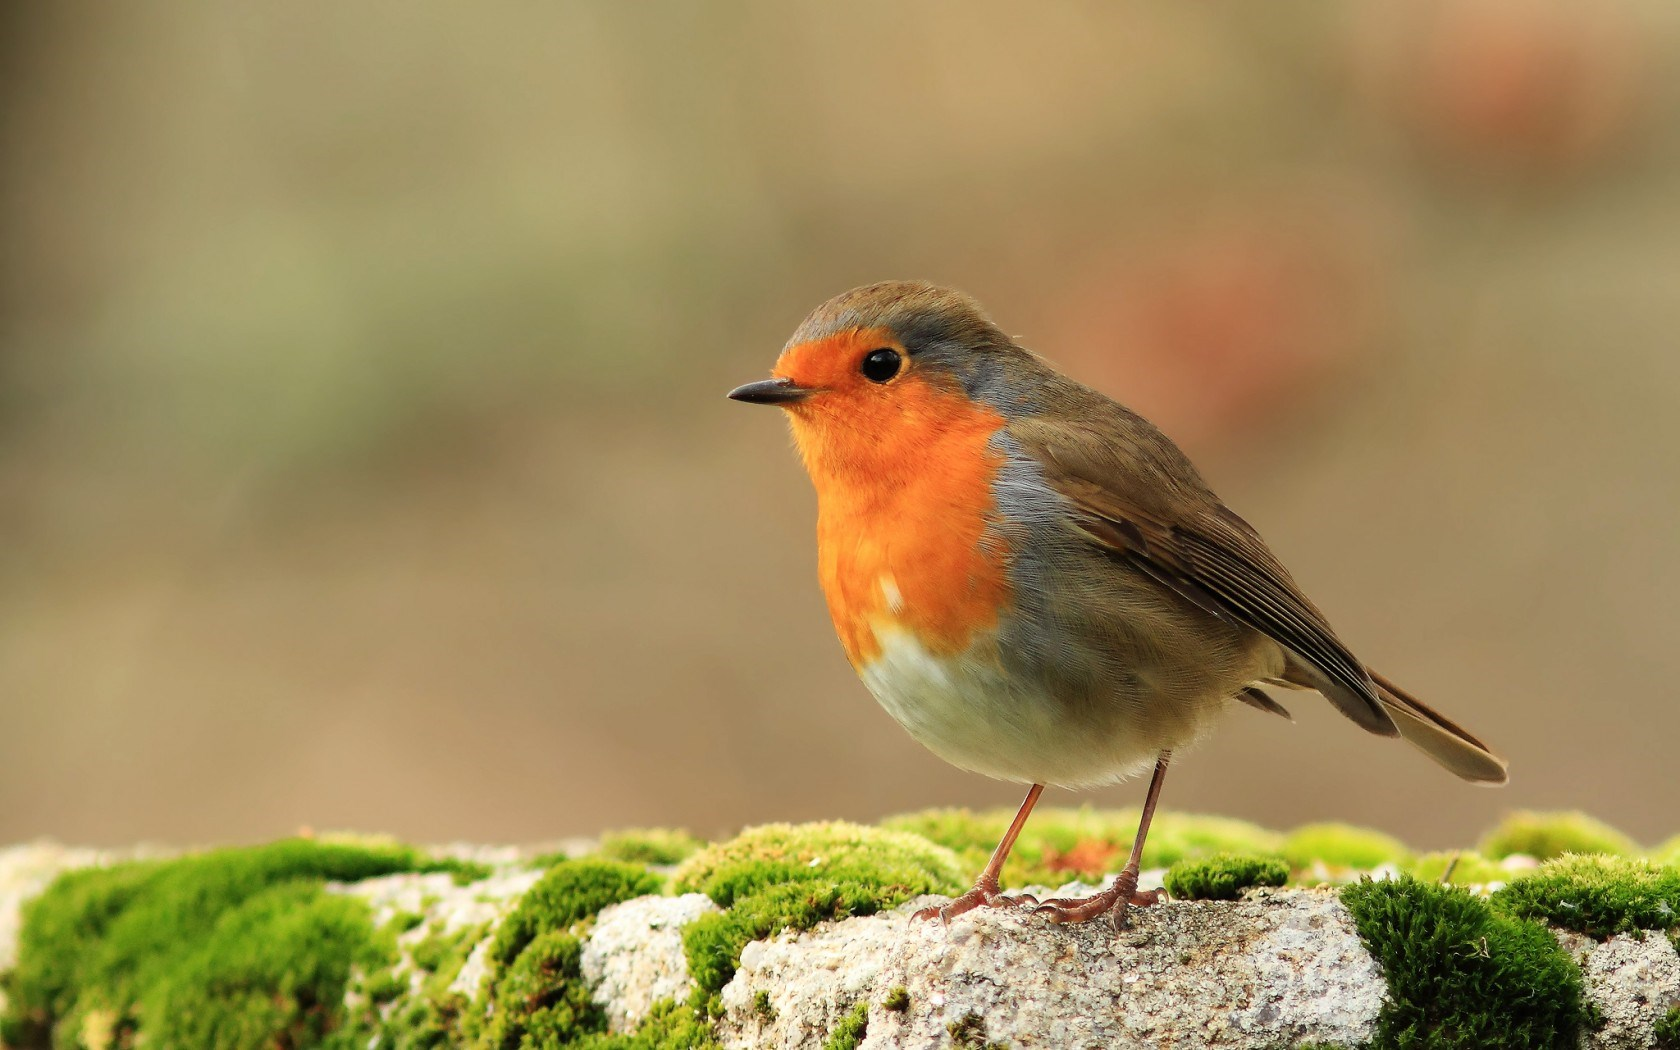 Robin Bird Wallpaper HD 43163 1680x1050 px